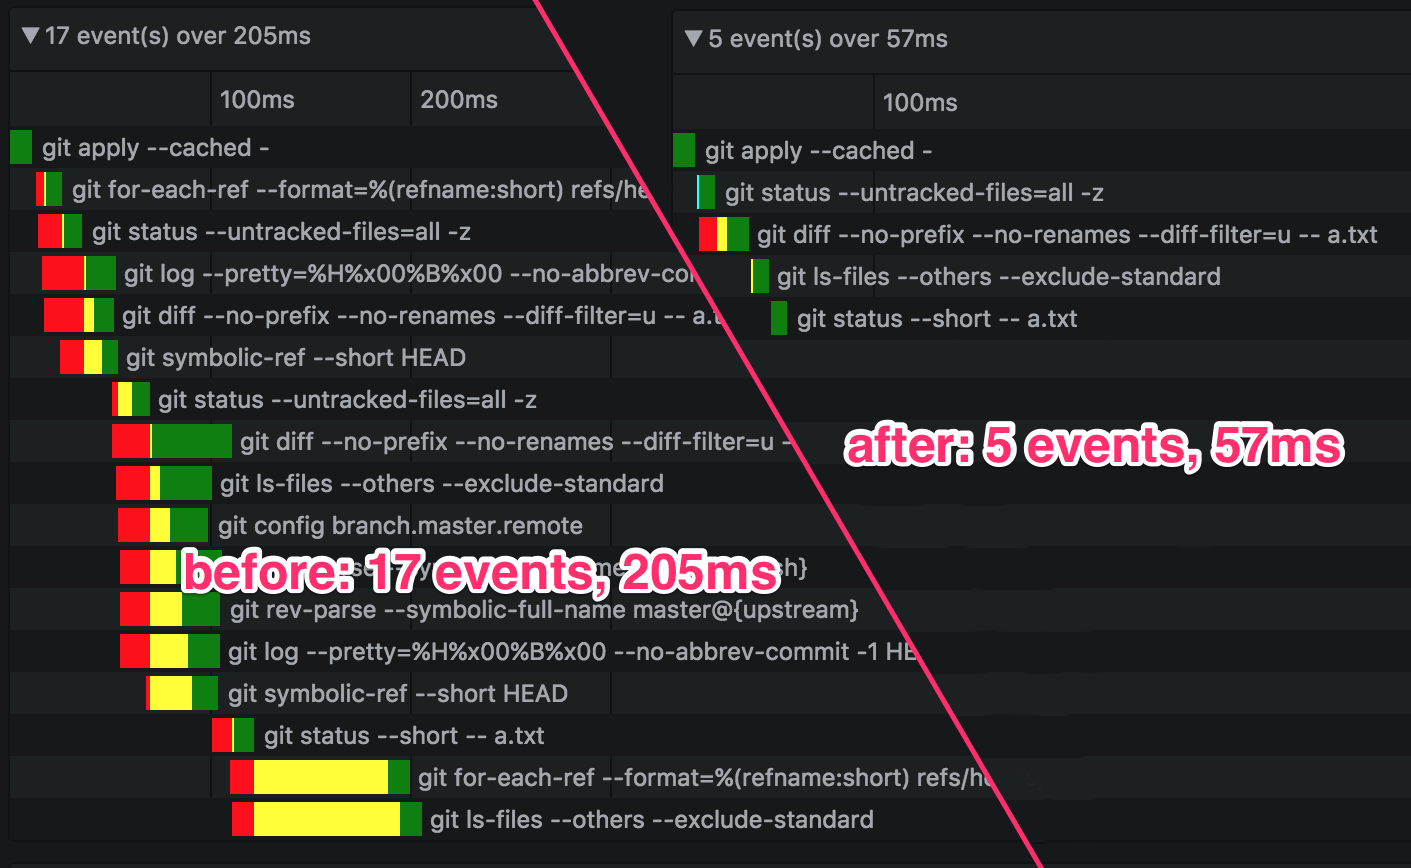 Caching — before 17 events taking 205ms, after 5 events taking 57ms